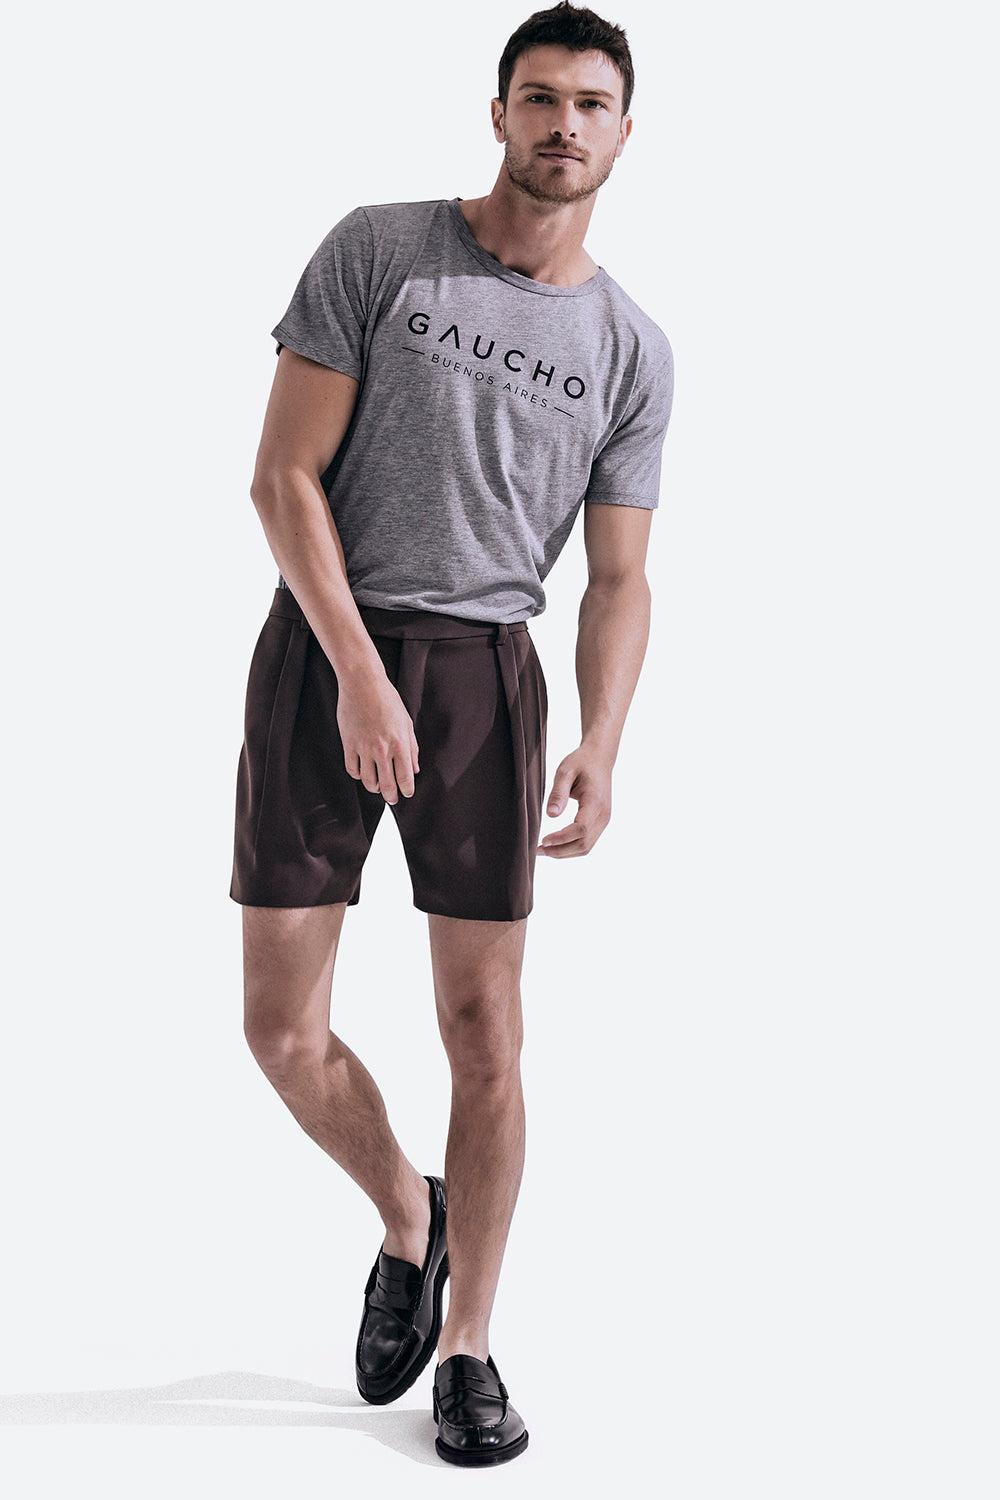 Men's Iconic Mitre T-shirt in Grey